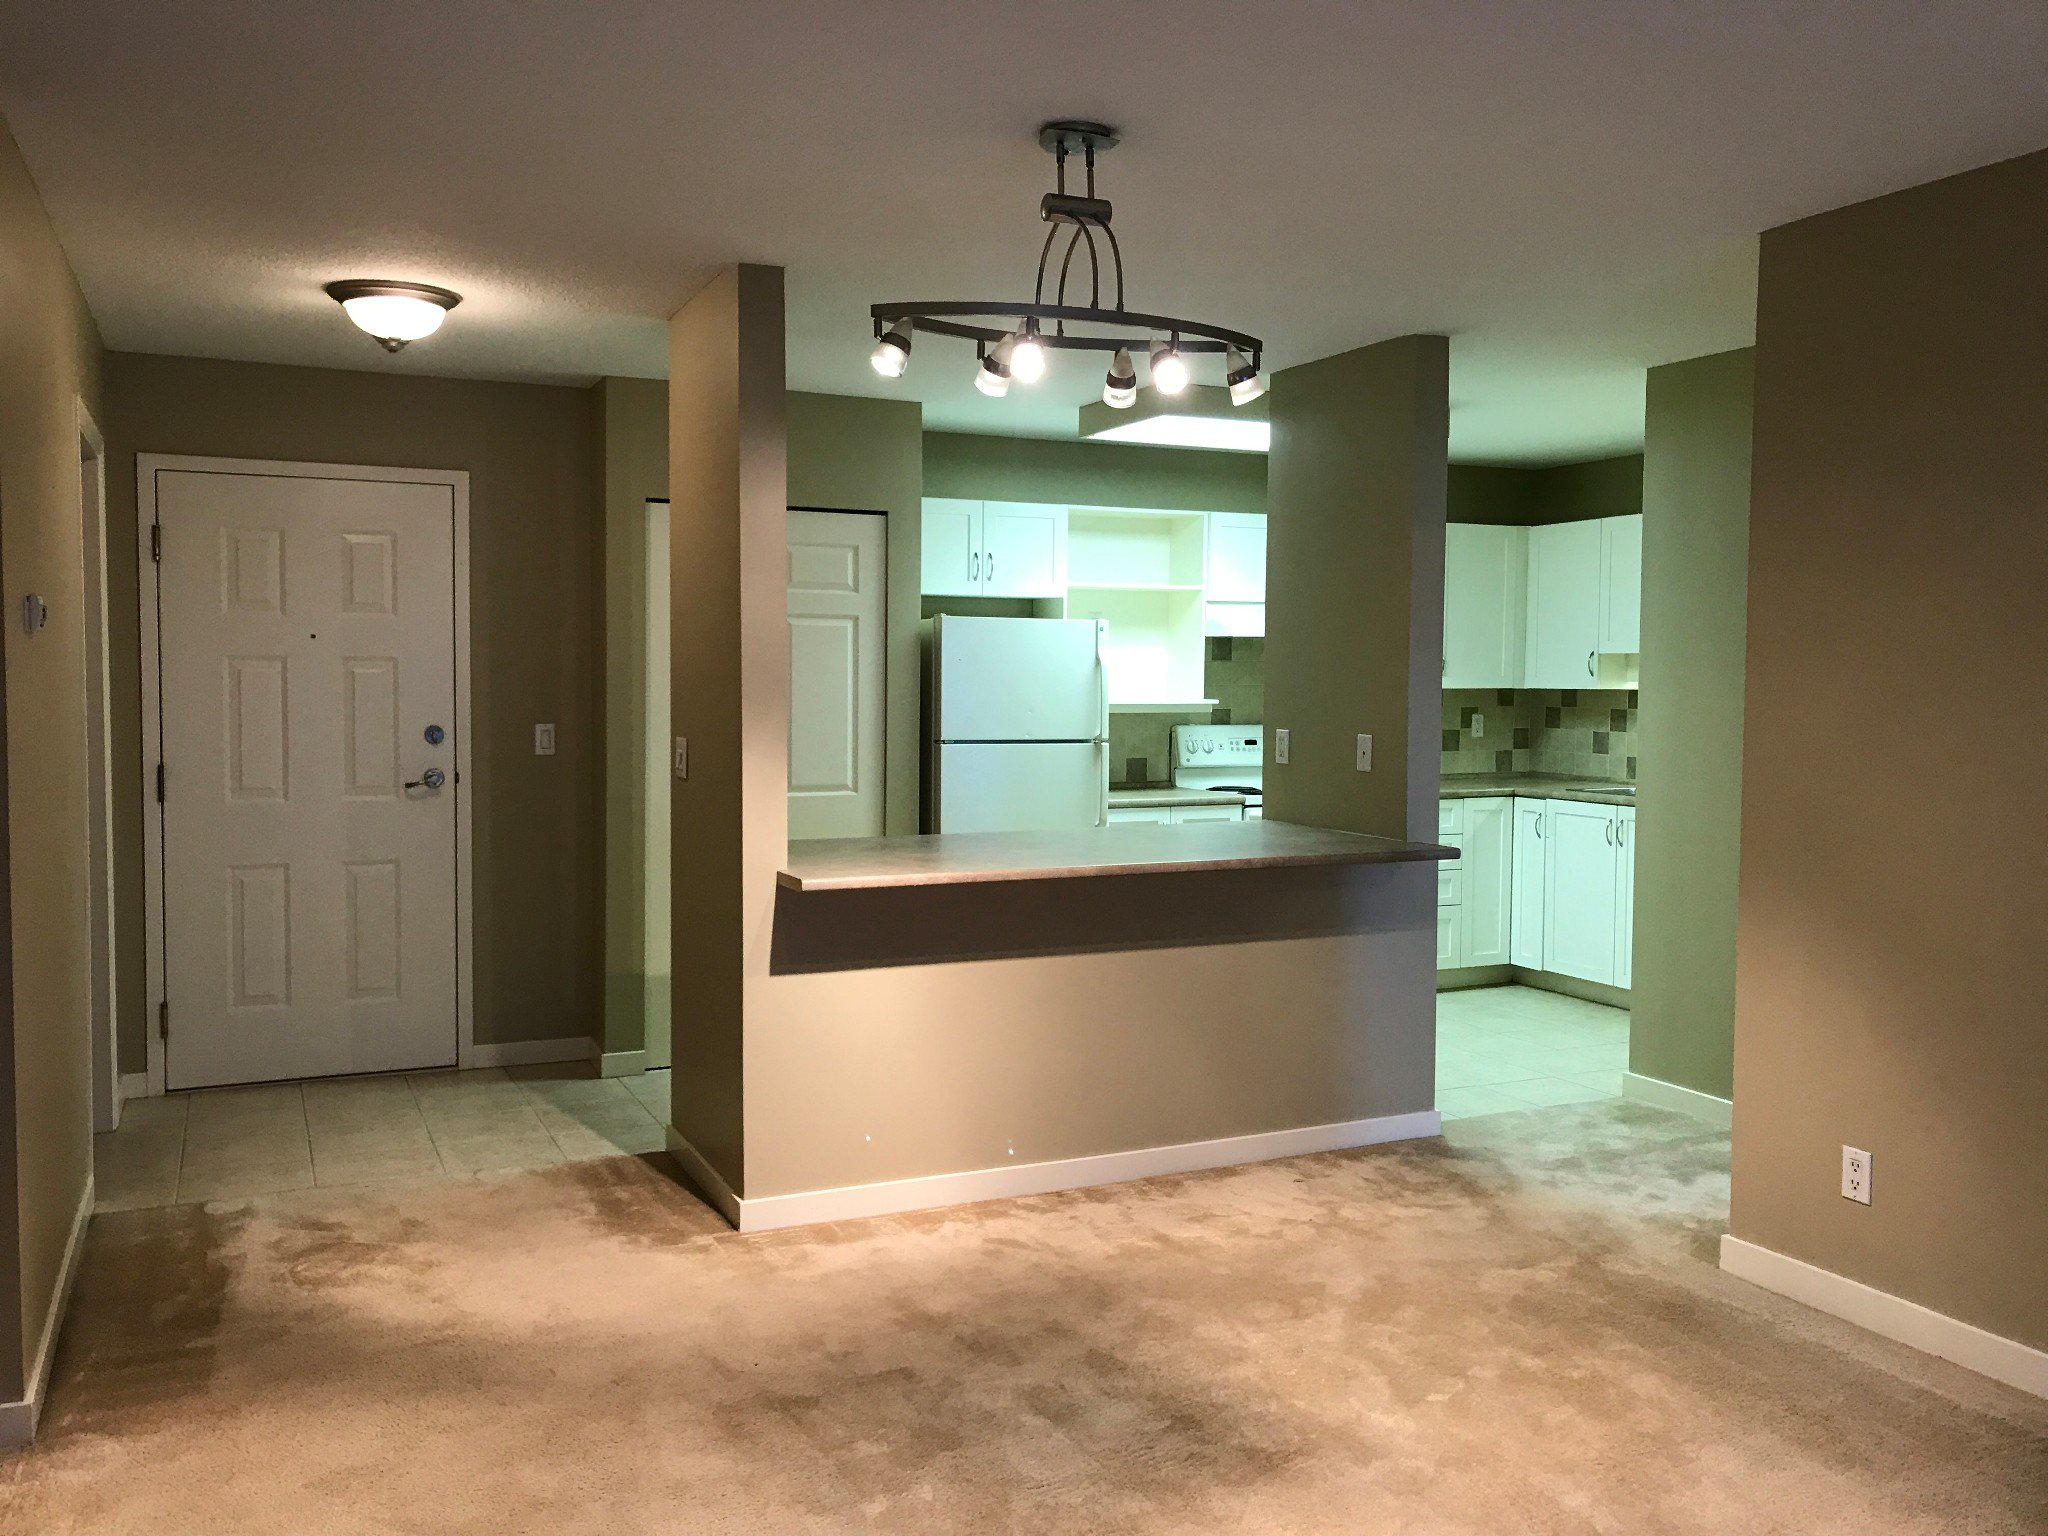 Photo 2: Photos: #329 2700 McCallum Rd. in Abbotsford: Central Abbotsford Condo for rent